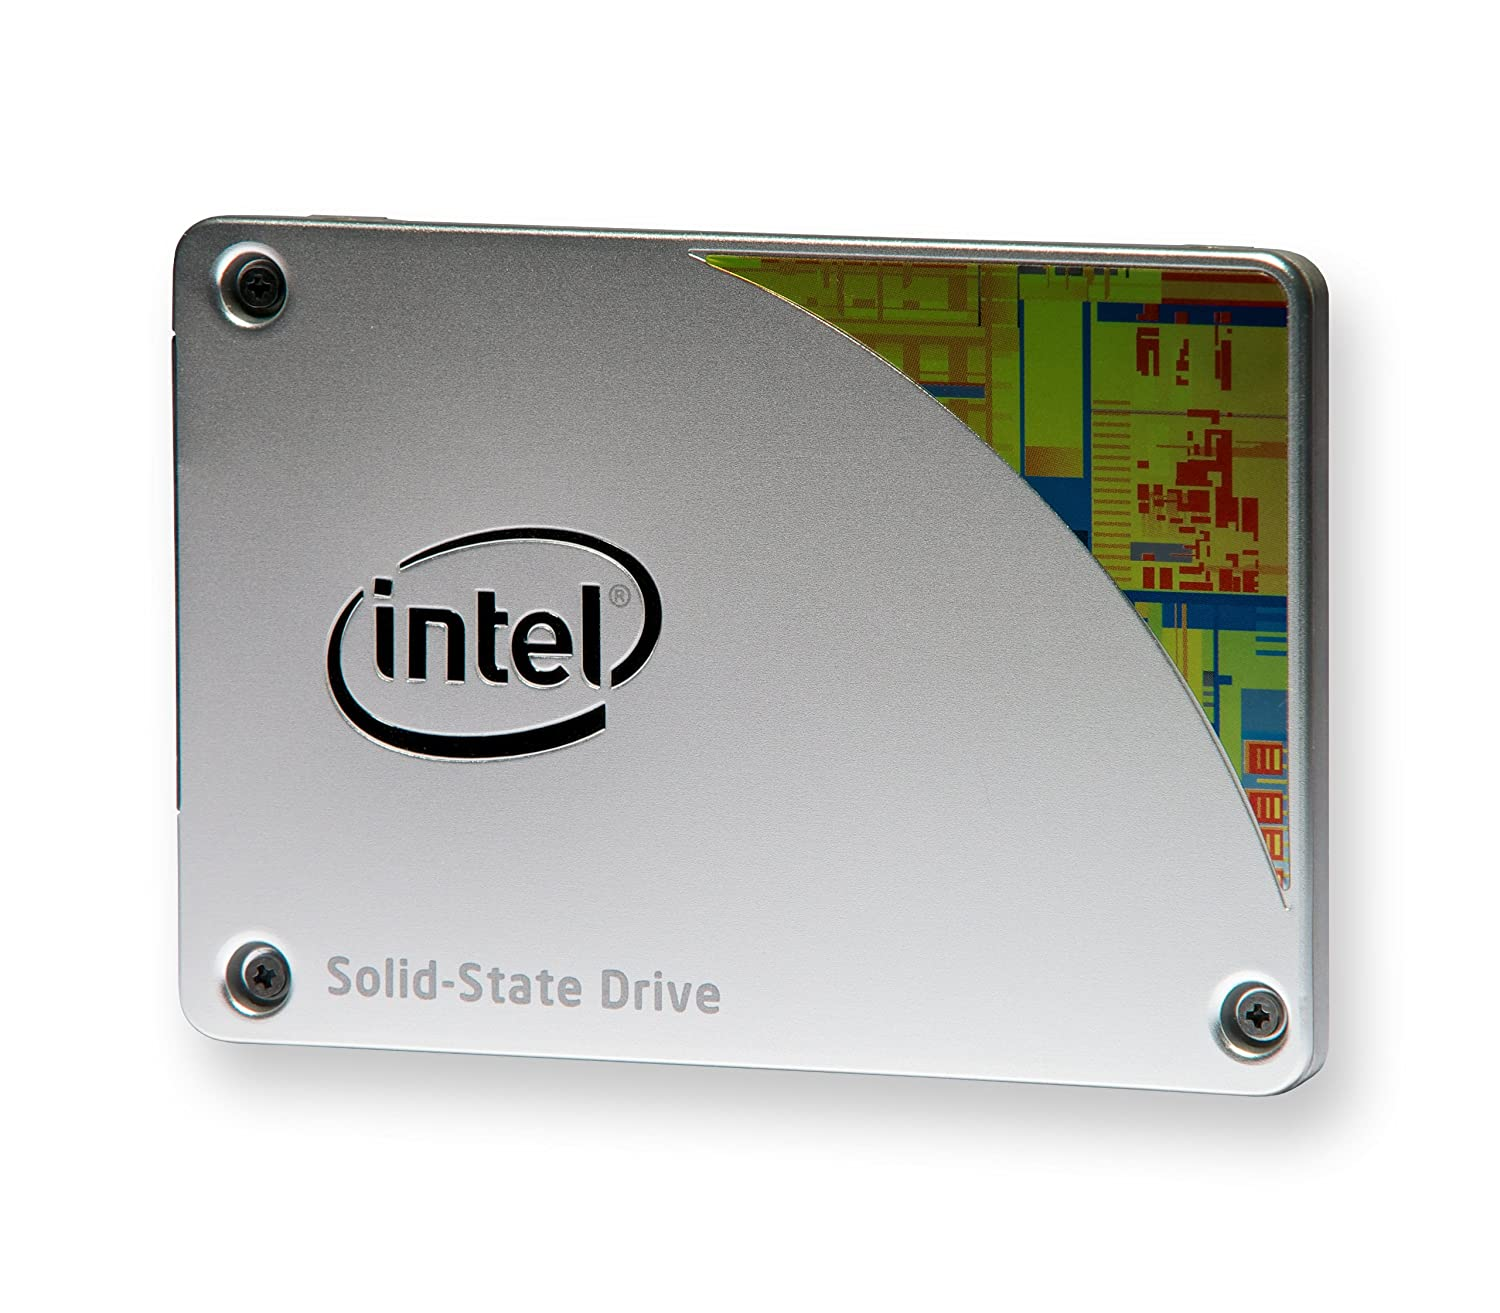 Intel 530 Series 240GB 2.5-Inch Internal Solid State Drive (Reseller Kit) $149.99